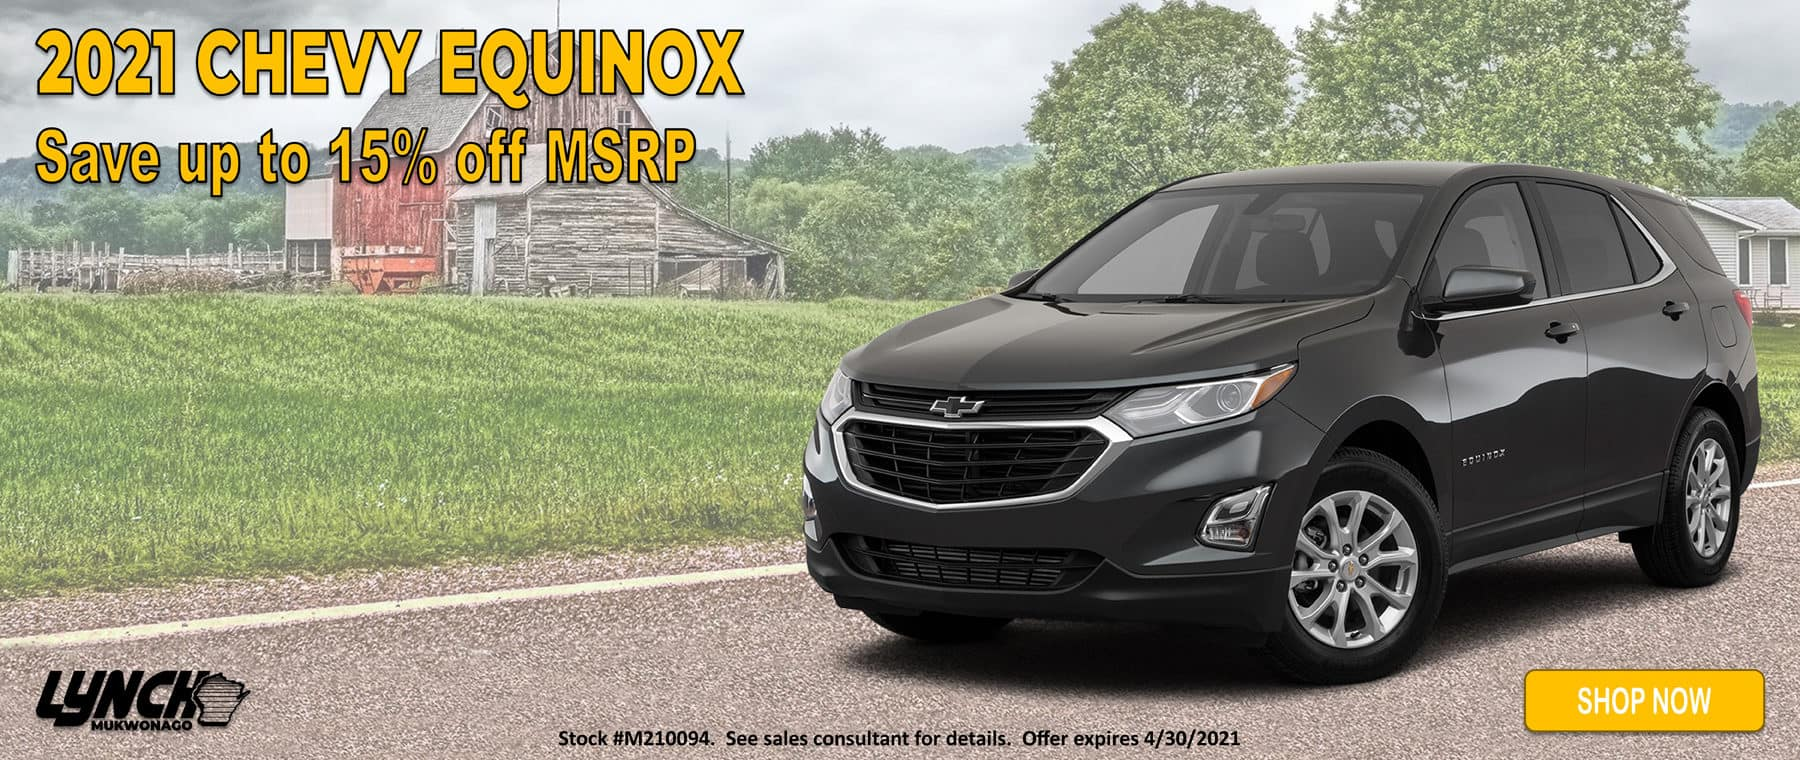 15% off MSRP on 2021 Chevy Equinox in Mukwonago WI